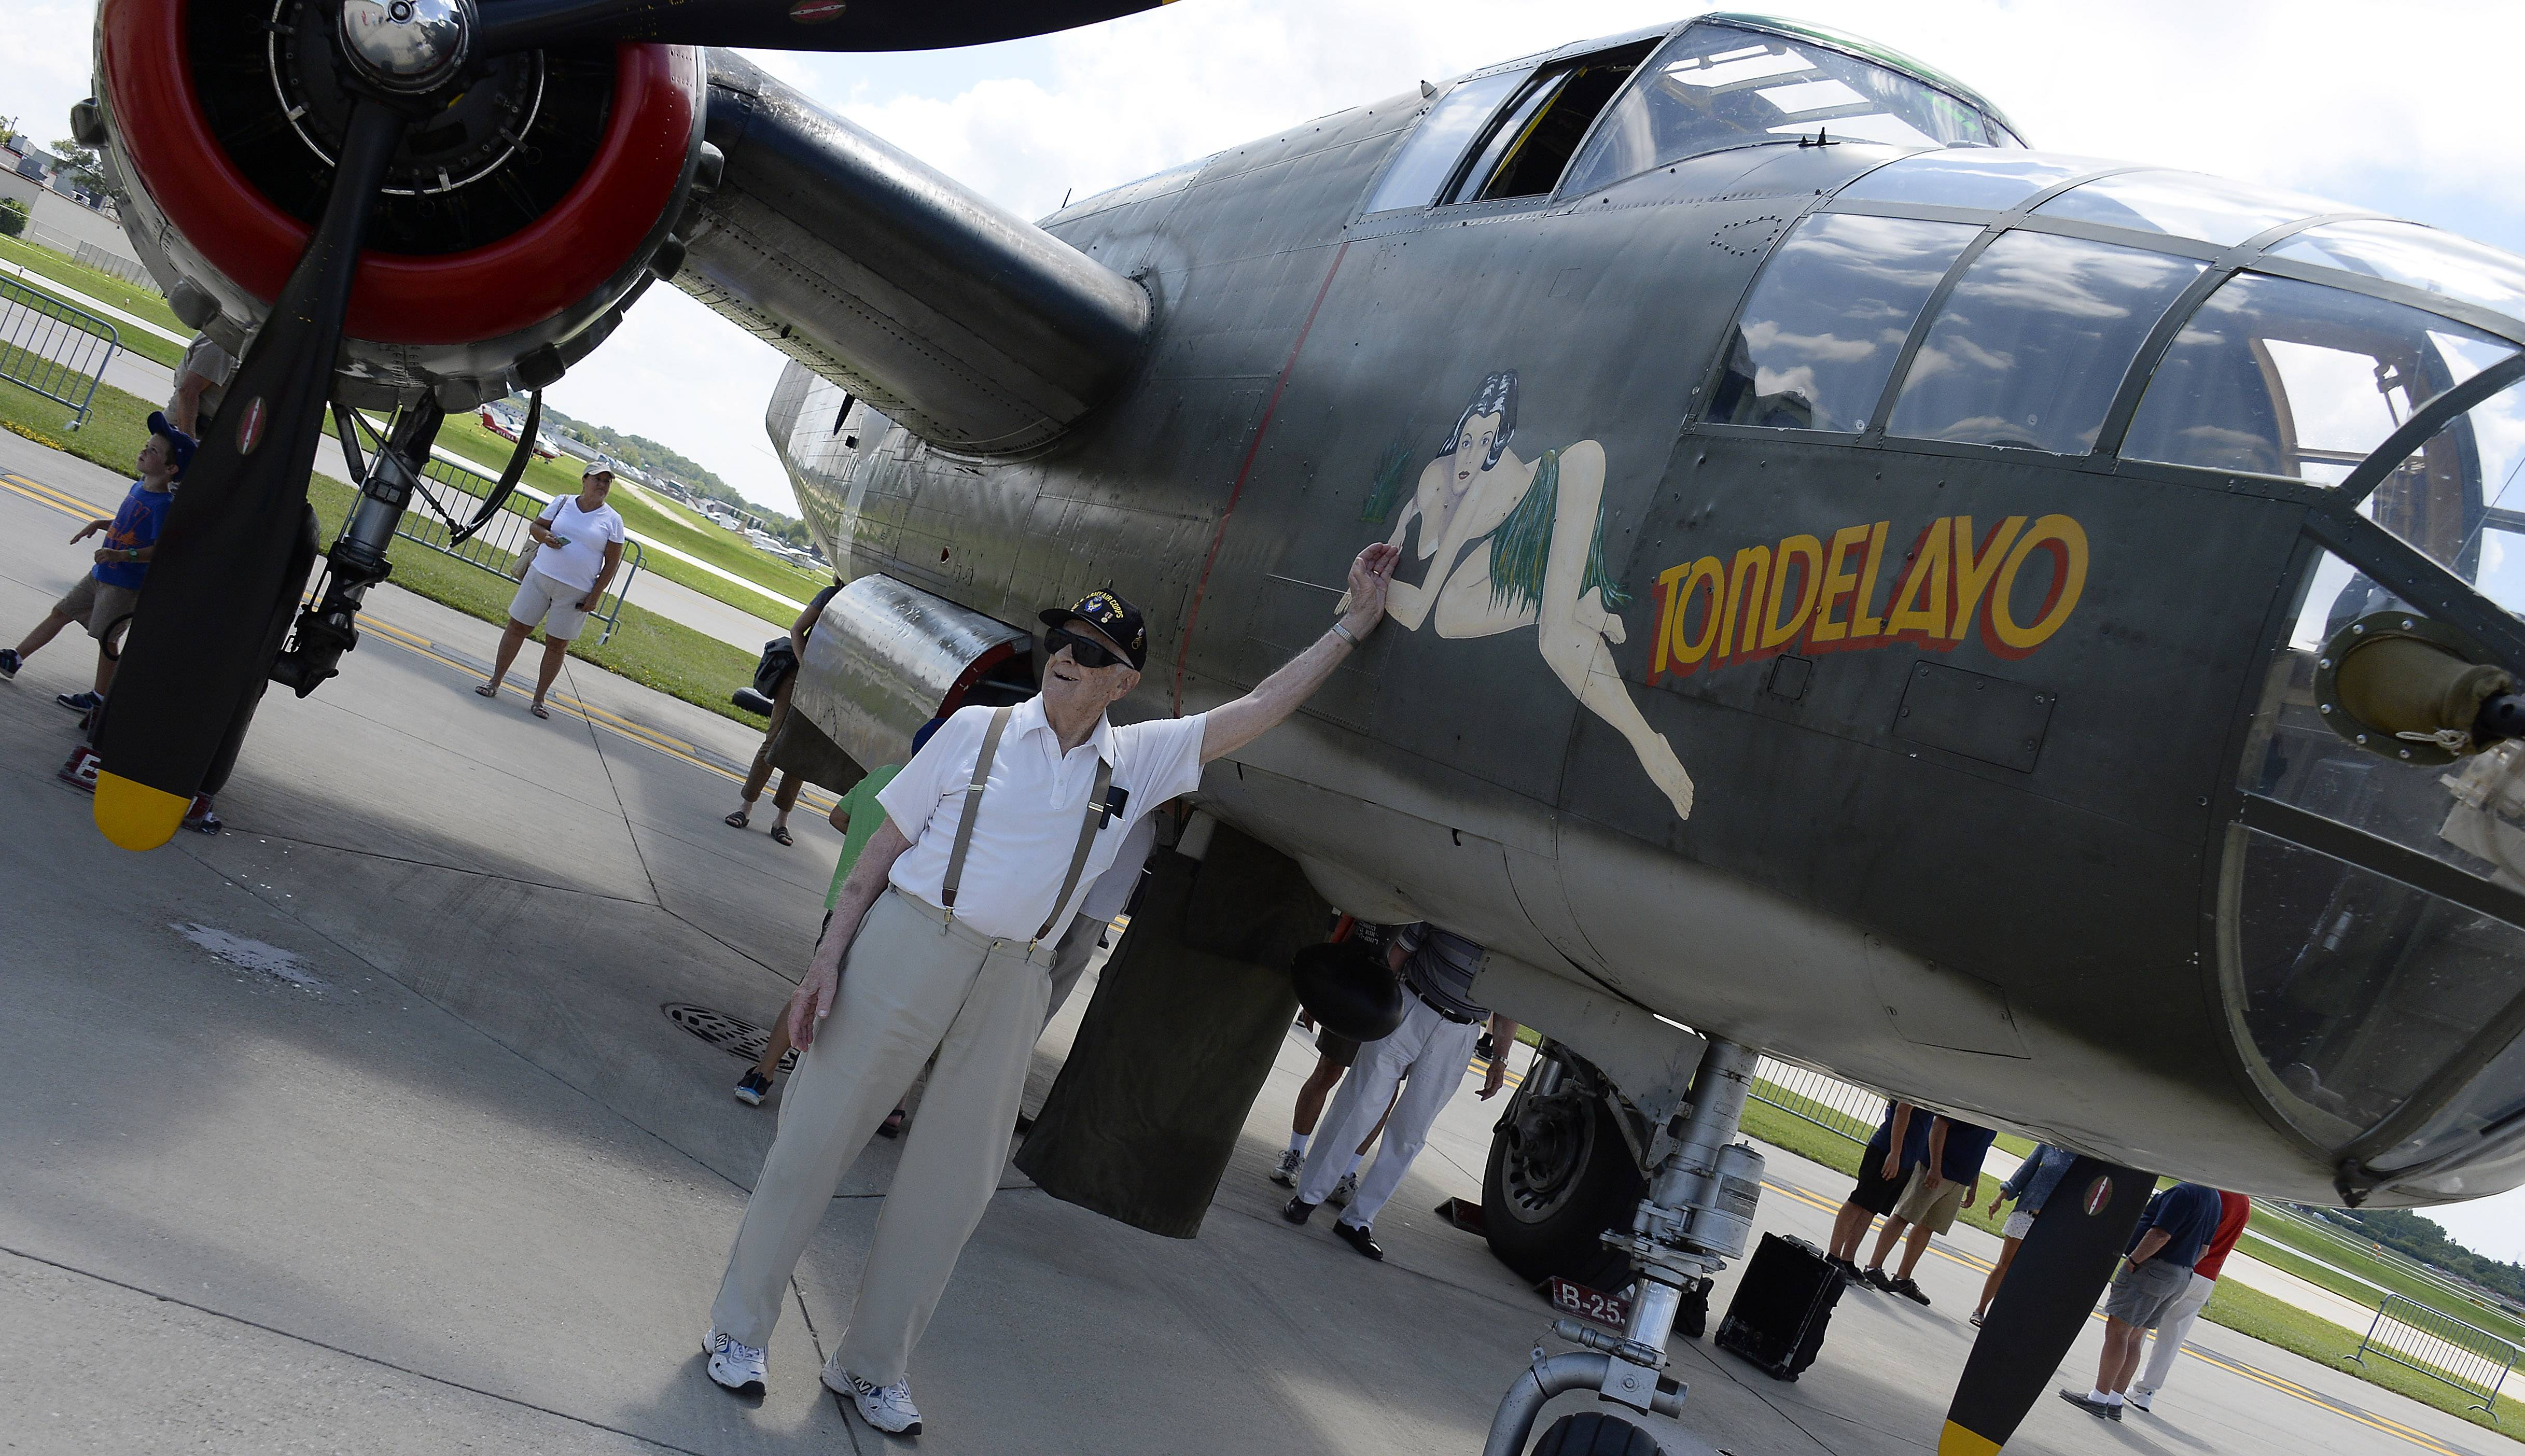 "Ken Zschach, 93, of Mount Prospect flew in a B-24 as a waist gunner during the war. Here he stands with the North American B-25 Mitchell ""Tondelayo"" bomber."